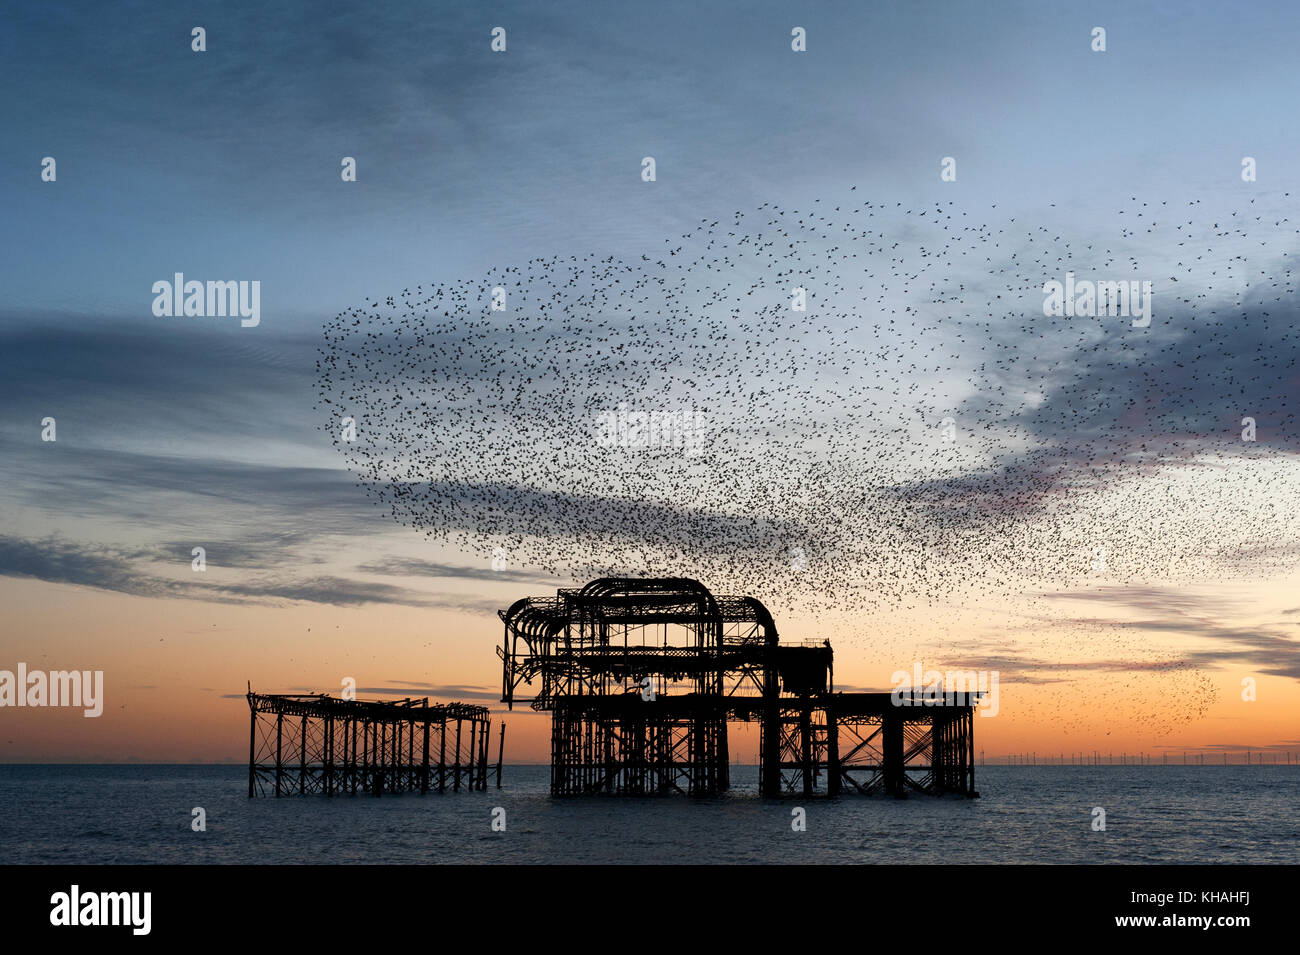 Murmuration over the ruins of Brighton's West Pier on the south coast of England. A flock starlings perform aerial acrobatics over the pier at dusk. Stock Photo